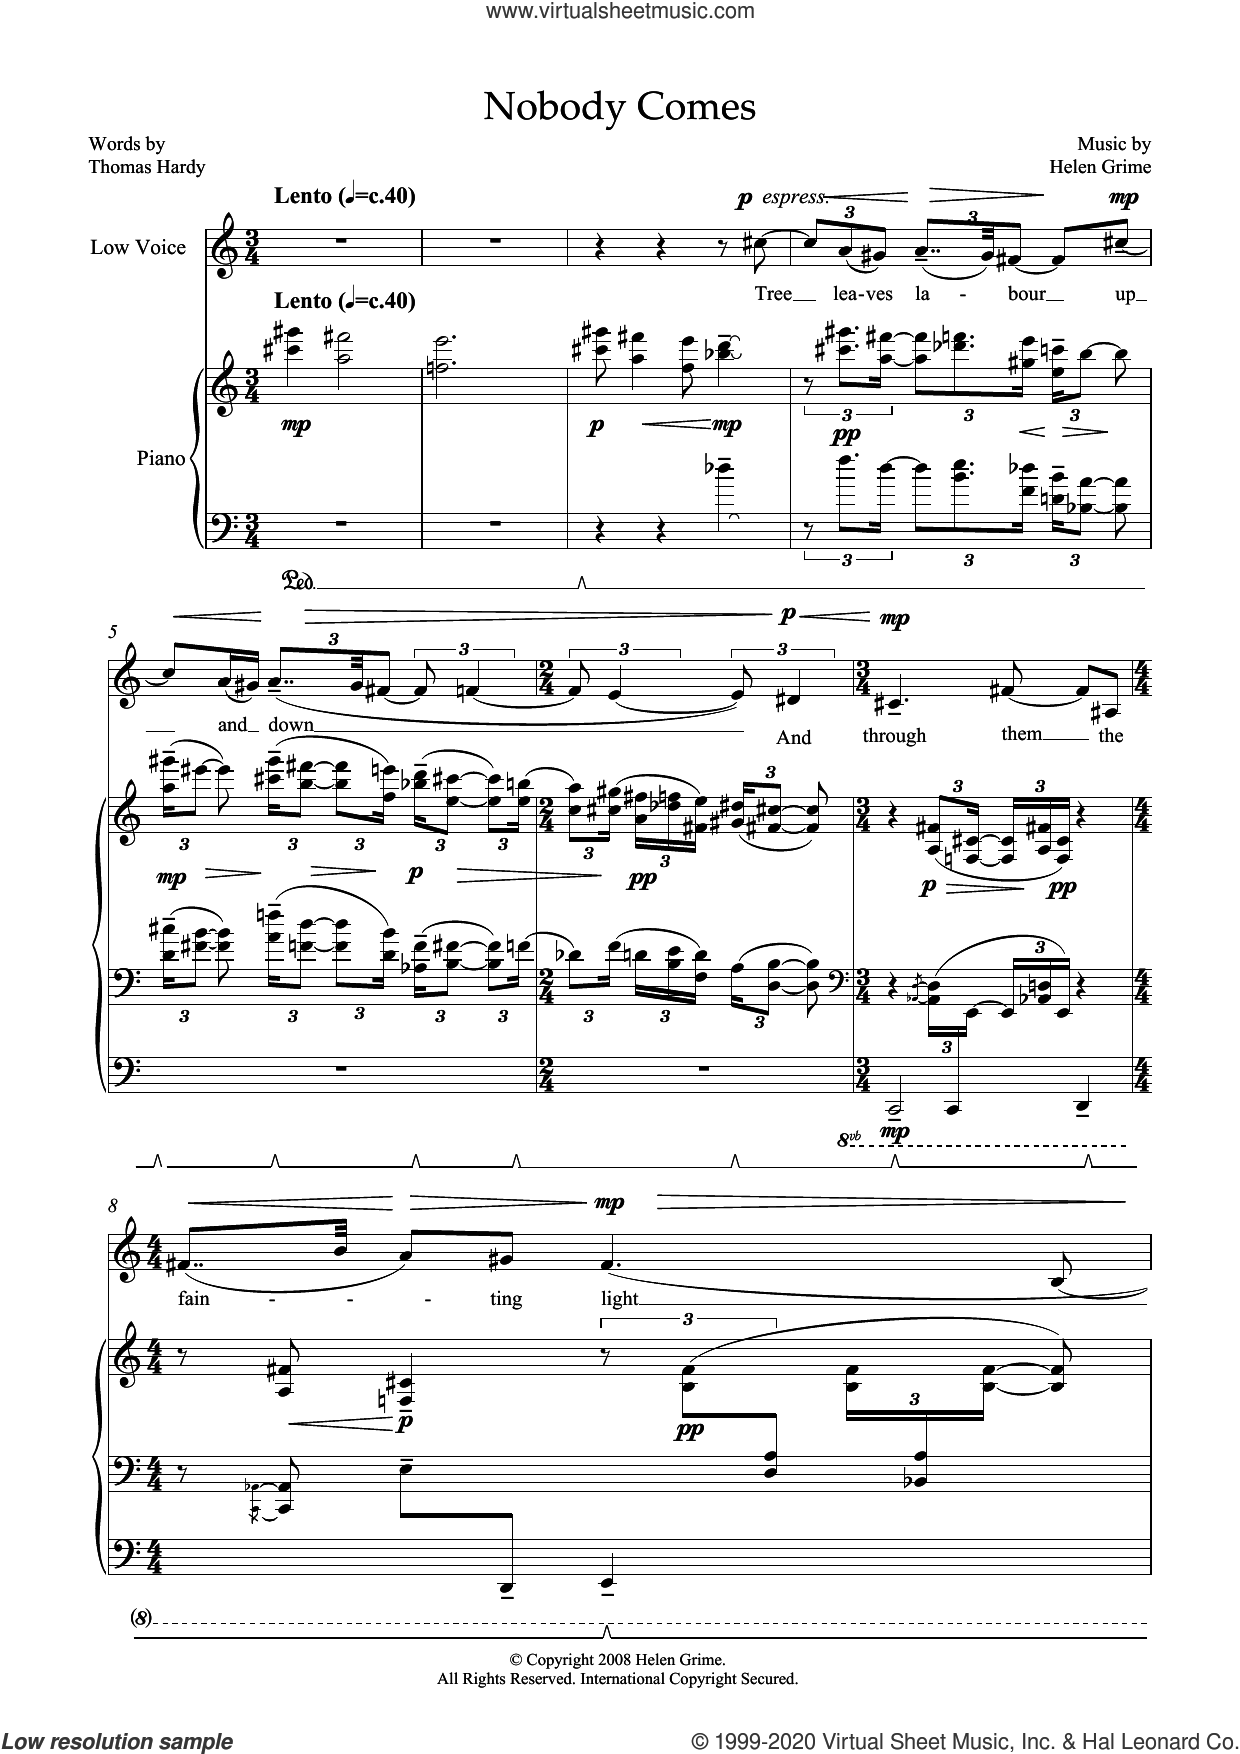 Nobody Comes (for low voice and piano) sheet music for voice and piano by Helen Grime and Thomas Hardy, classical score, intermediate skill level